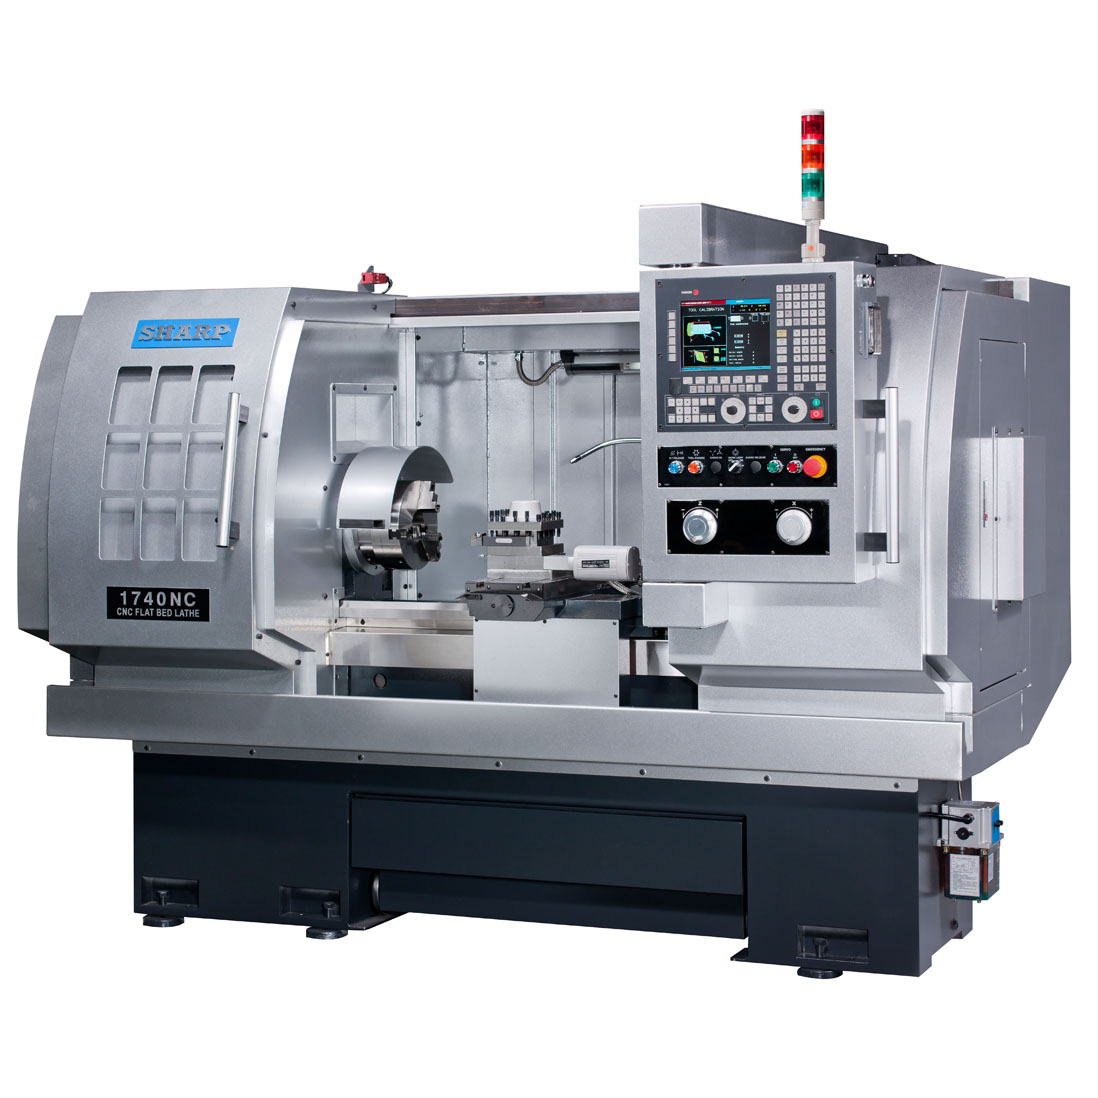 NEW SHARP 2040NC PRECISION CNC LATHE